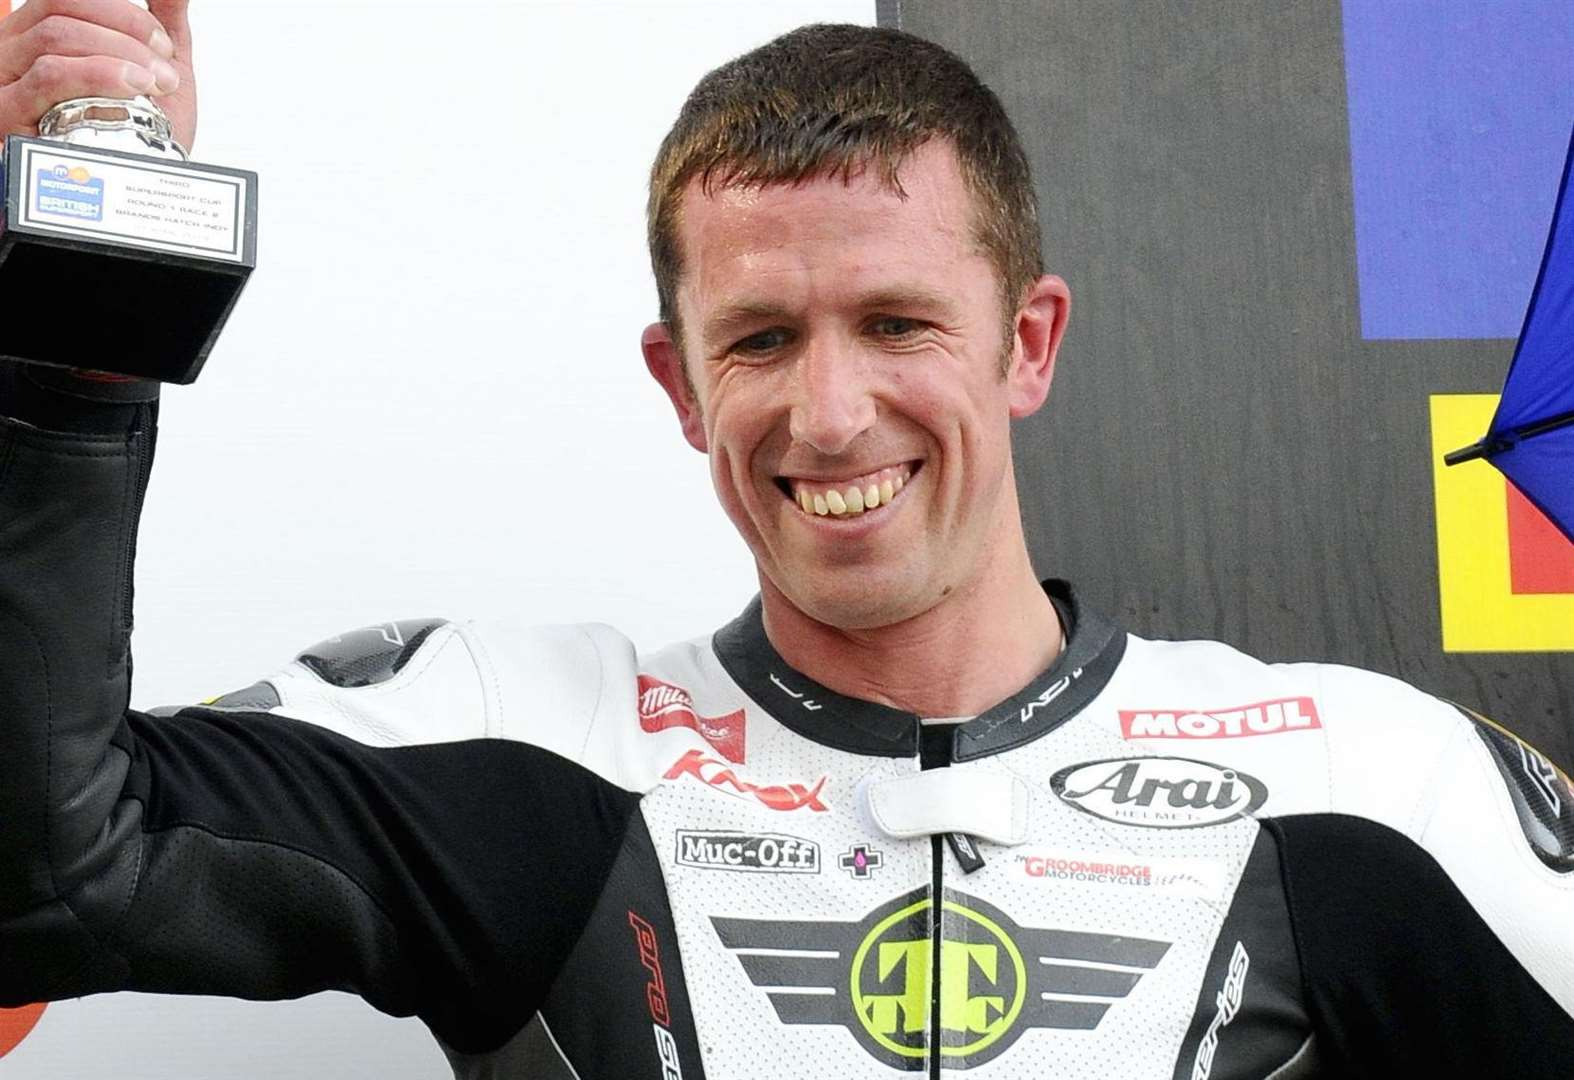 Thousands raised for injured superbike star